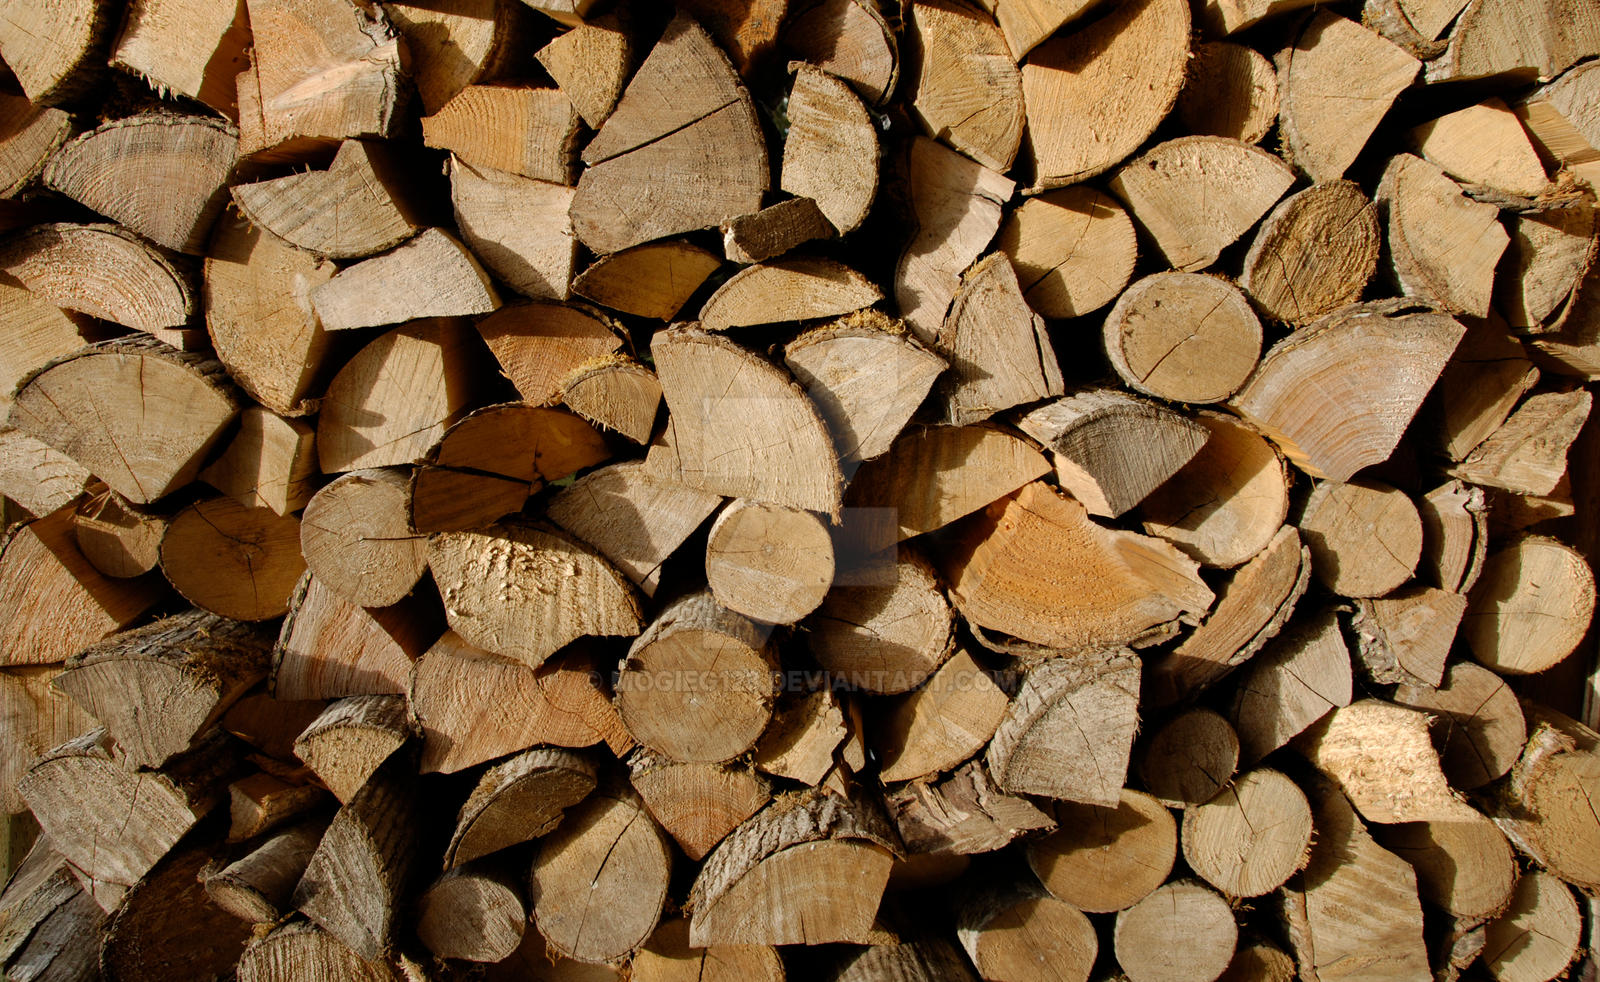 Woodpile texture by MogieG123